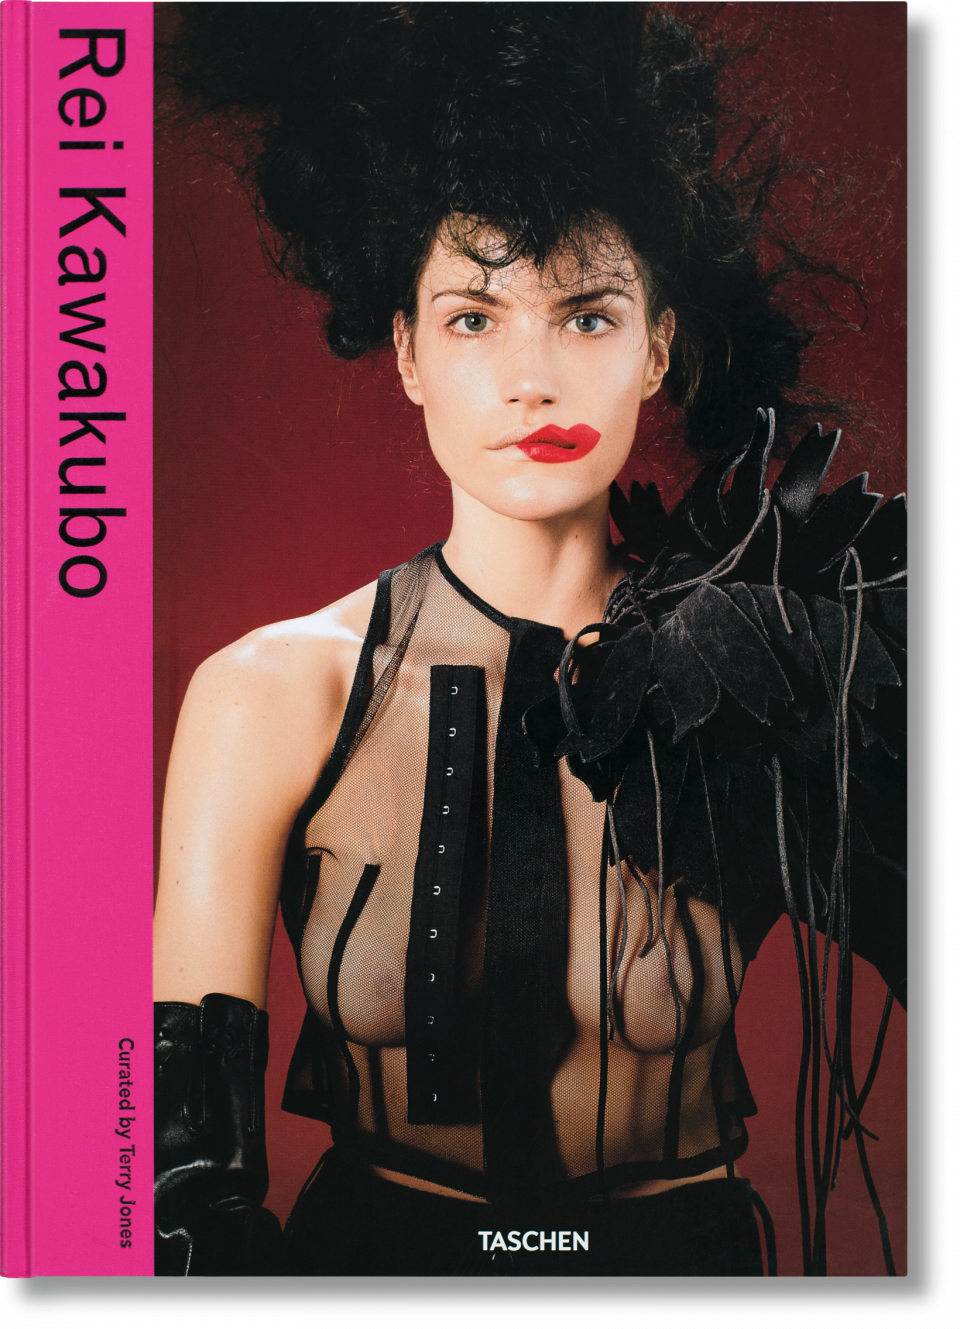 rei kawakubo book (published by Taschen)